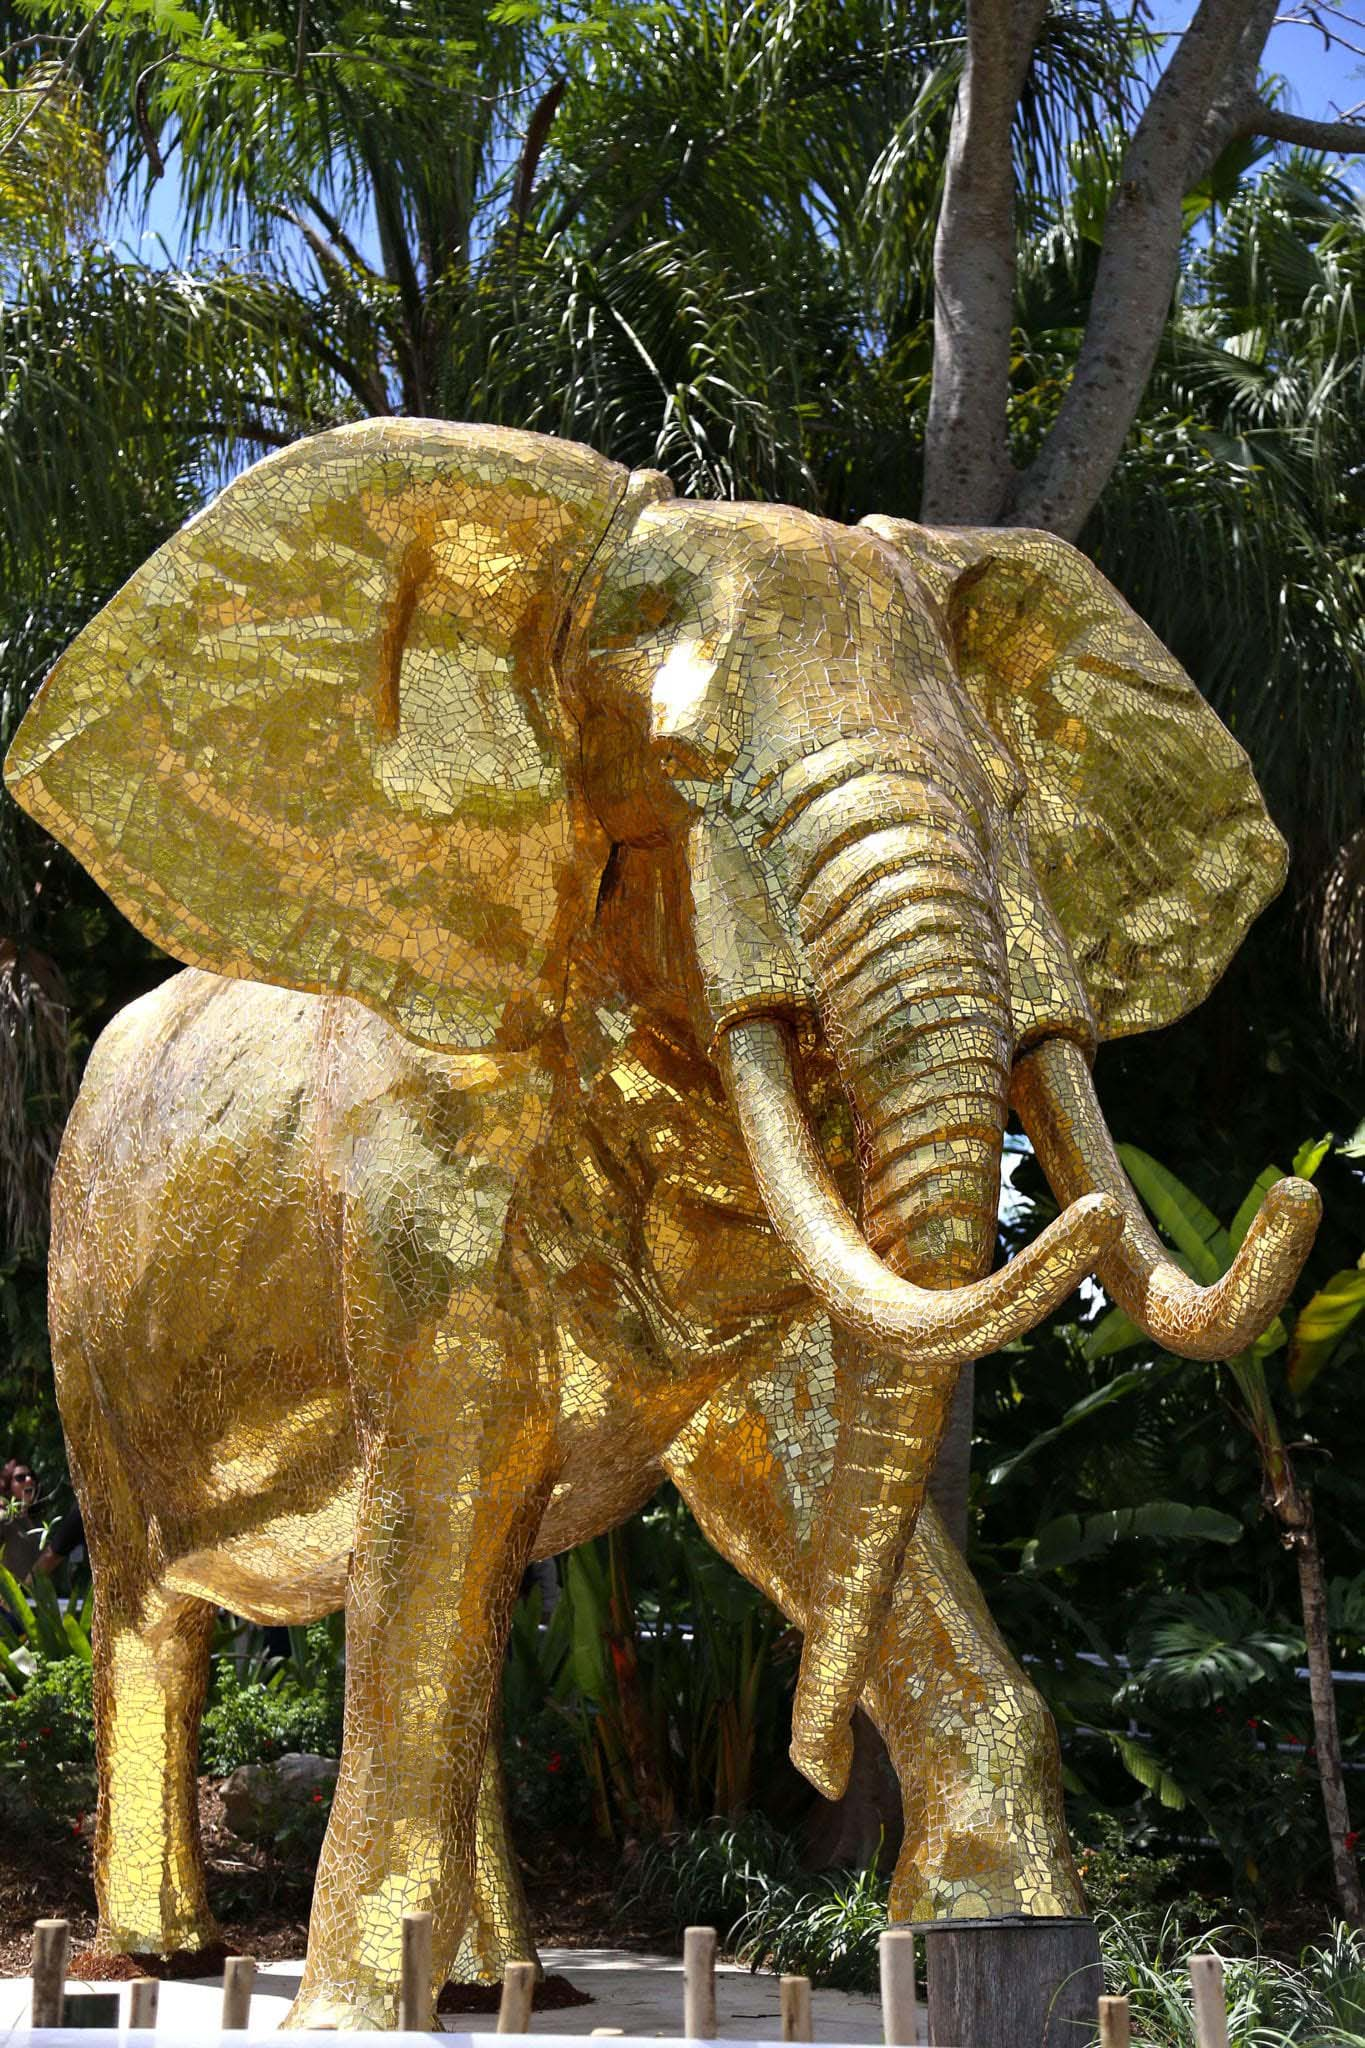 The Golden Elephant Zoo in Miami, Florida